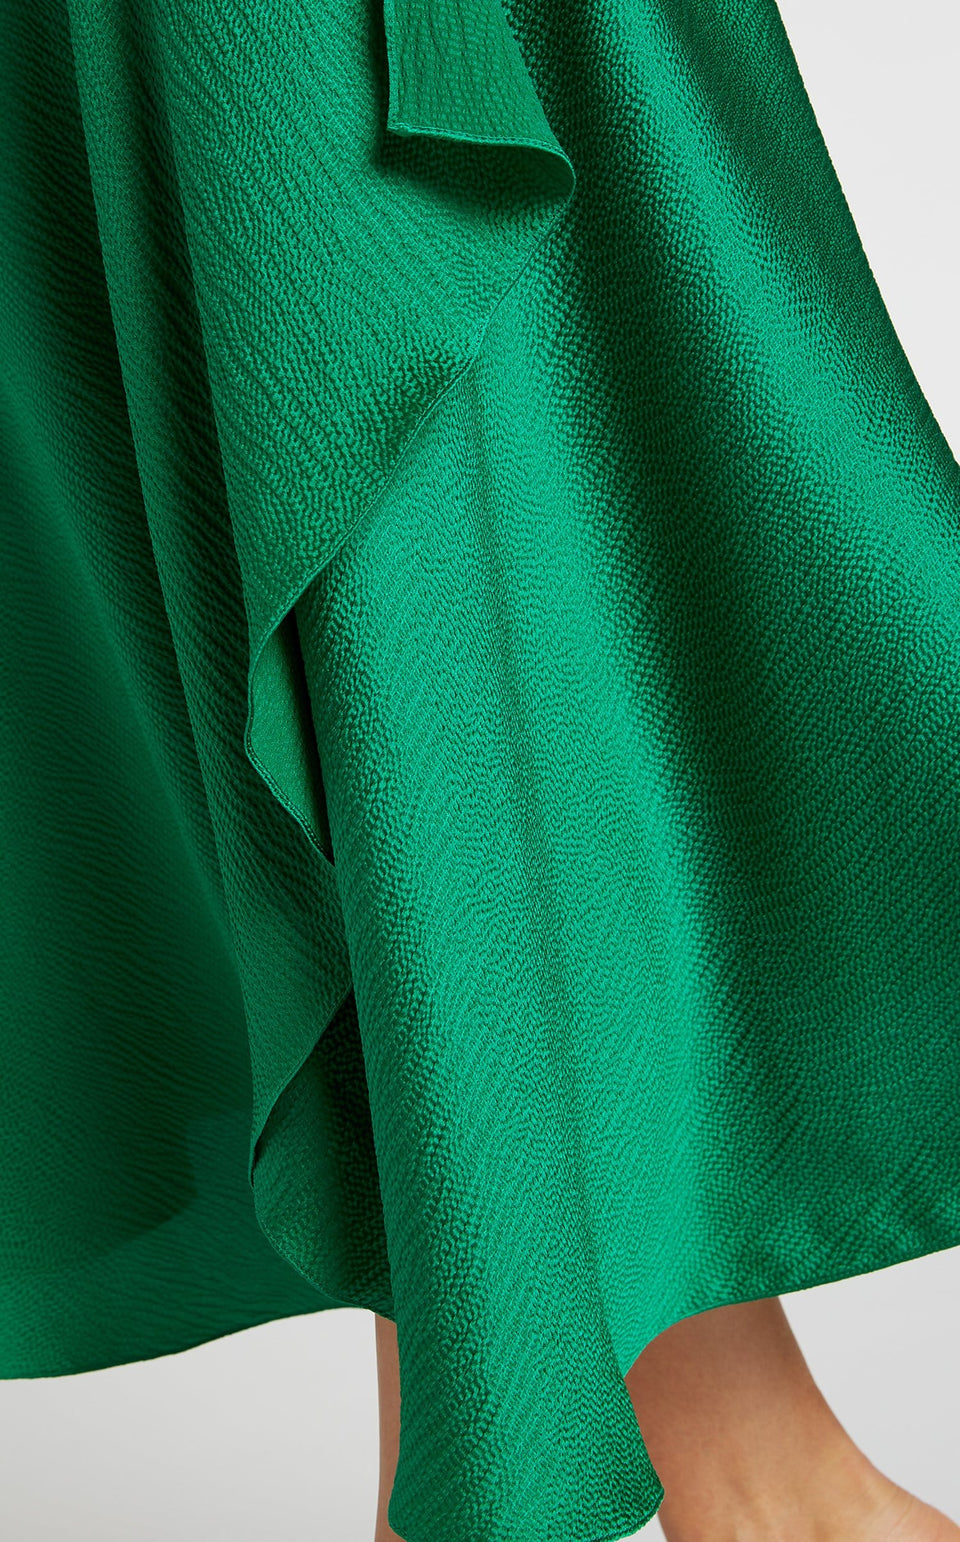 Hurst Skirt In Emerald/Black from Roland Mouret